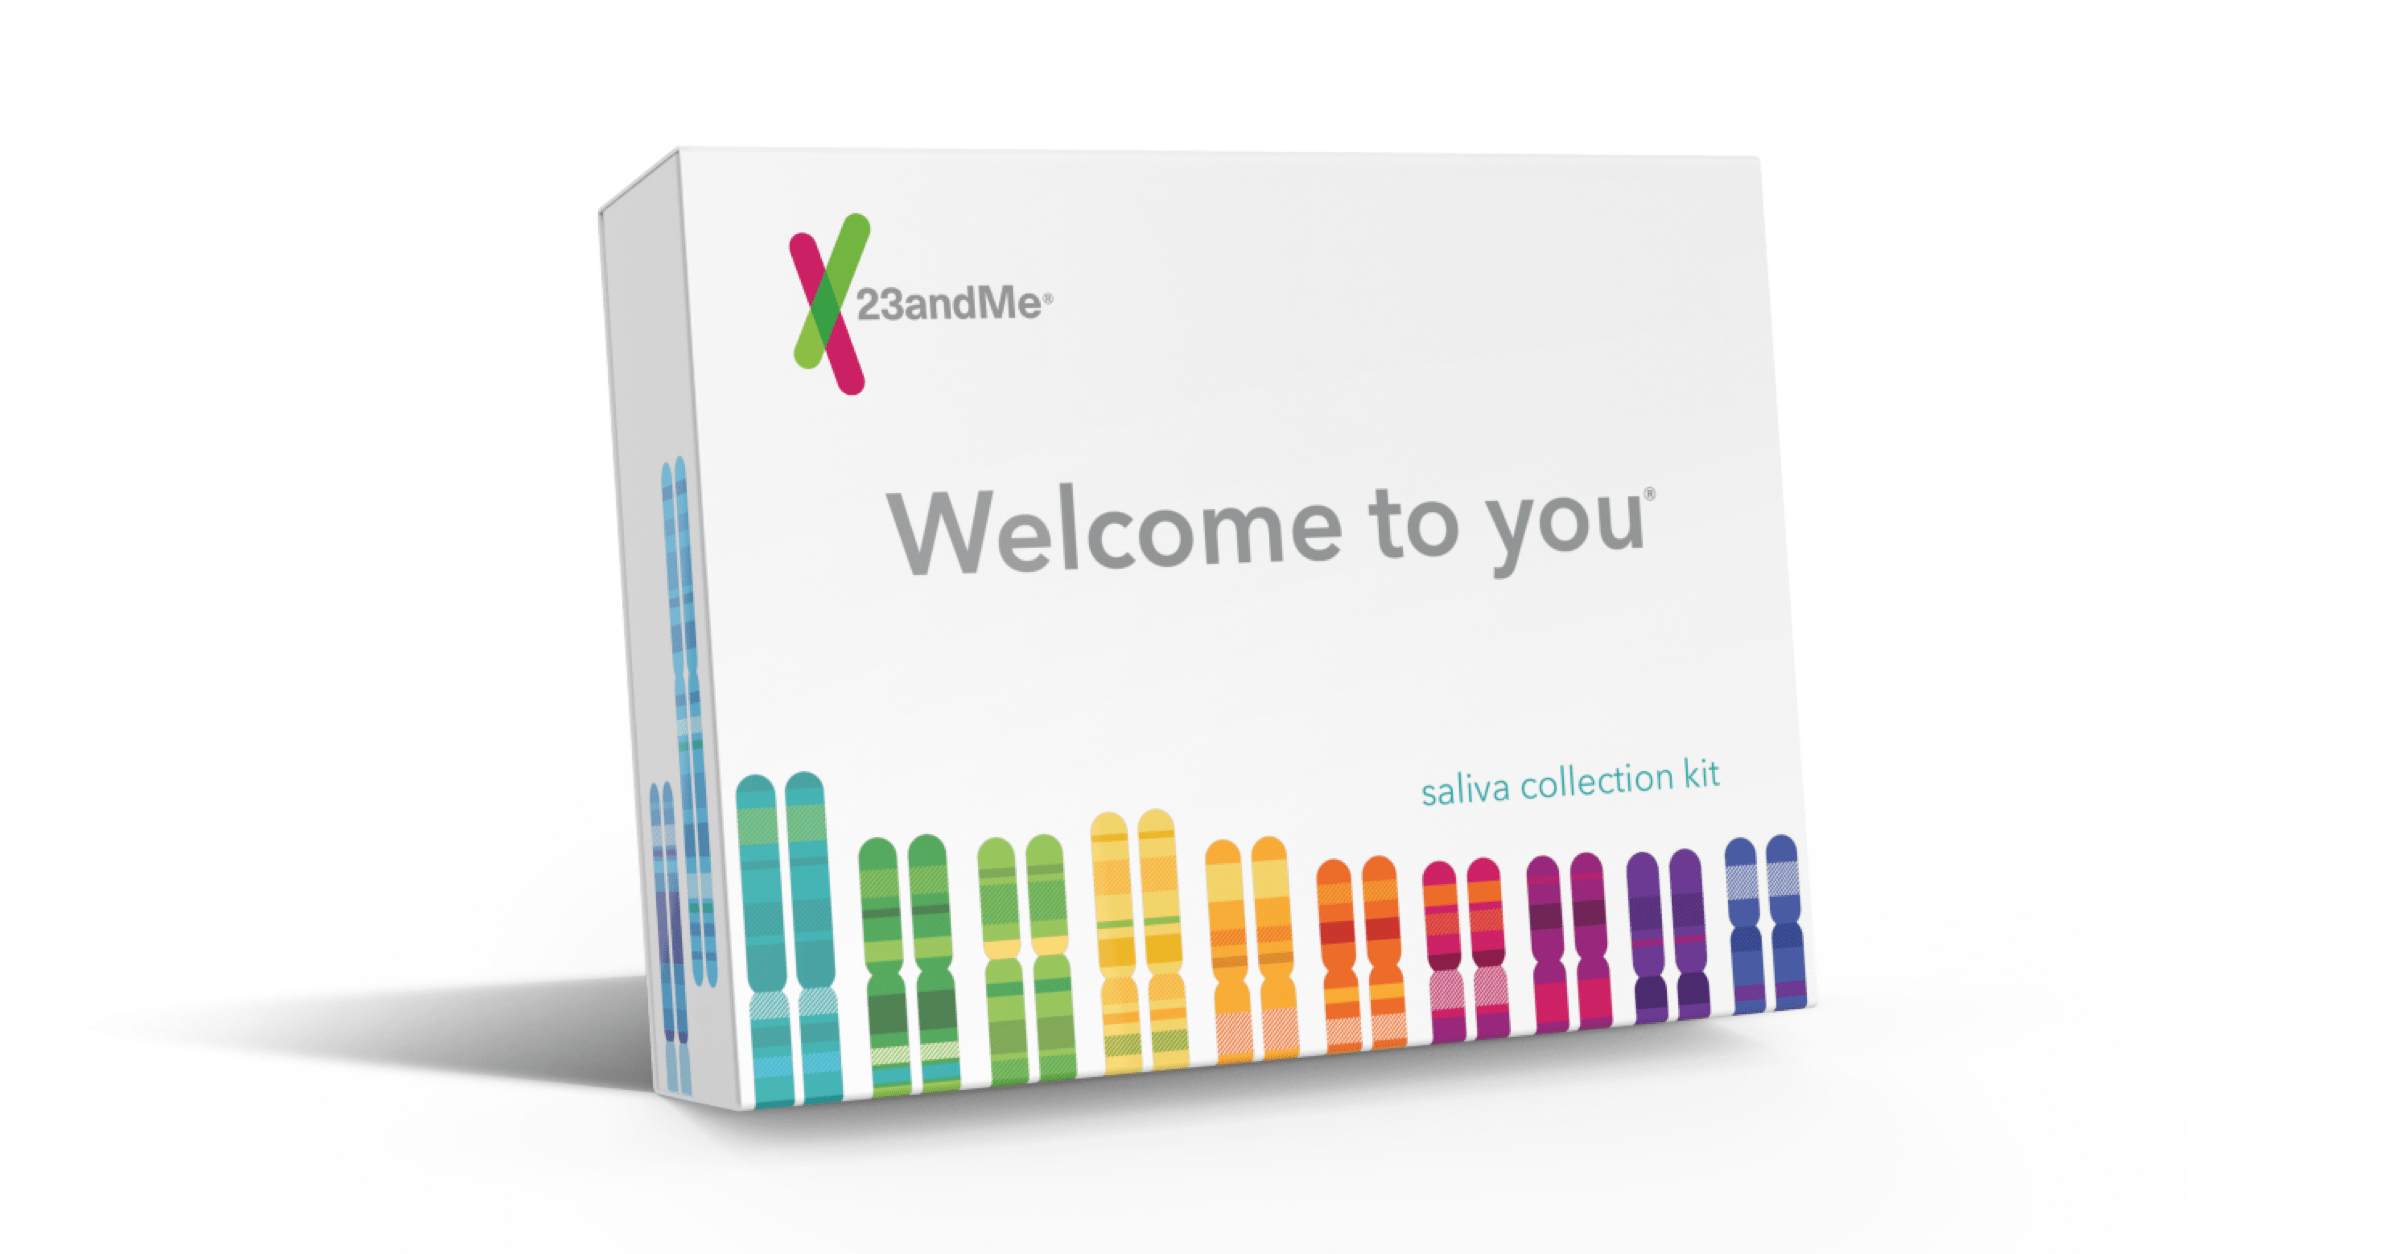 dna testing home kits walgreens